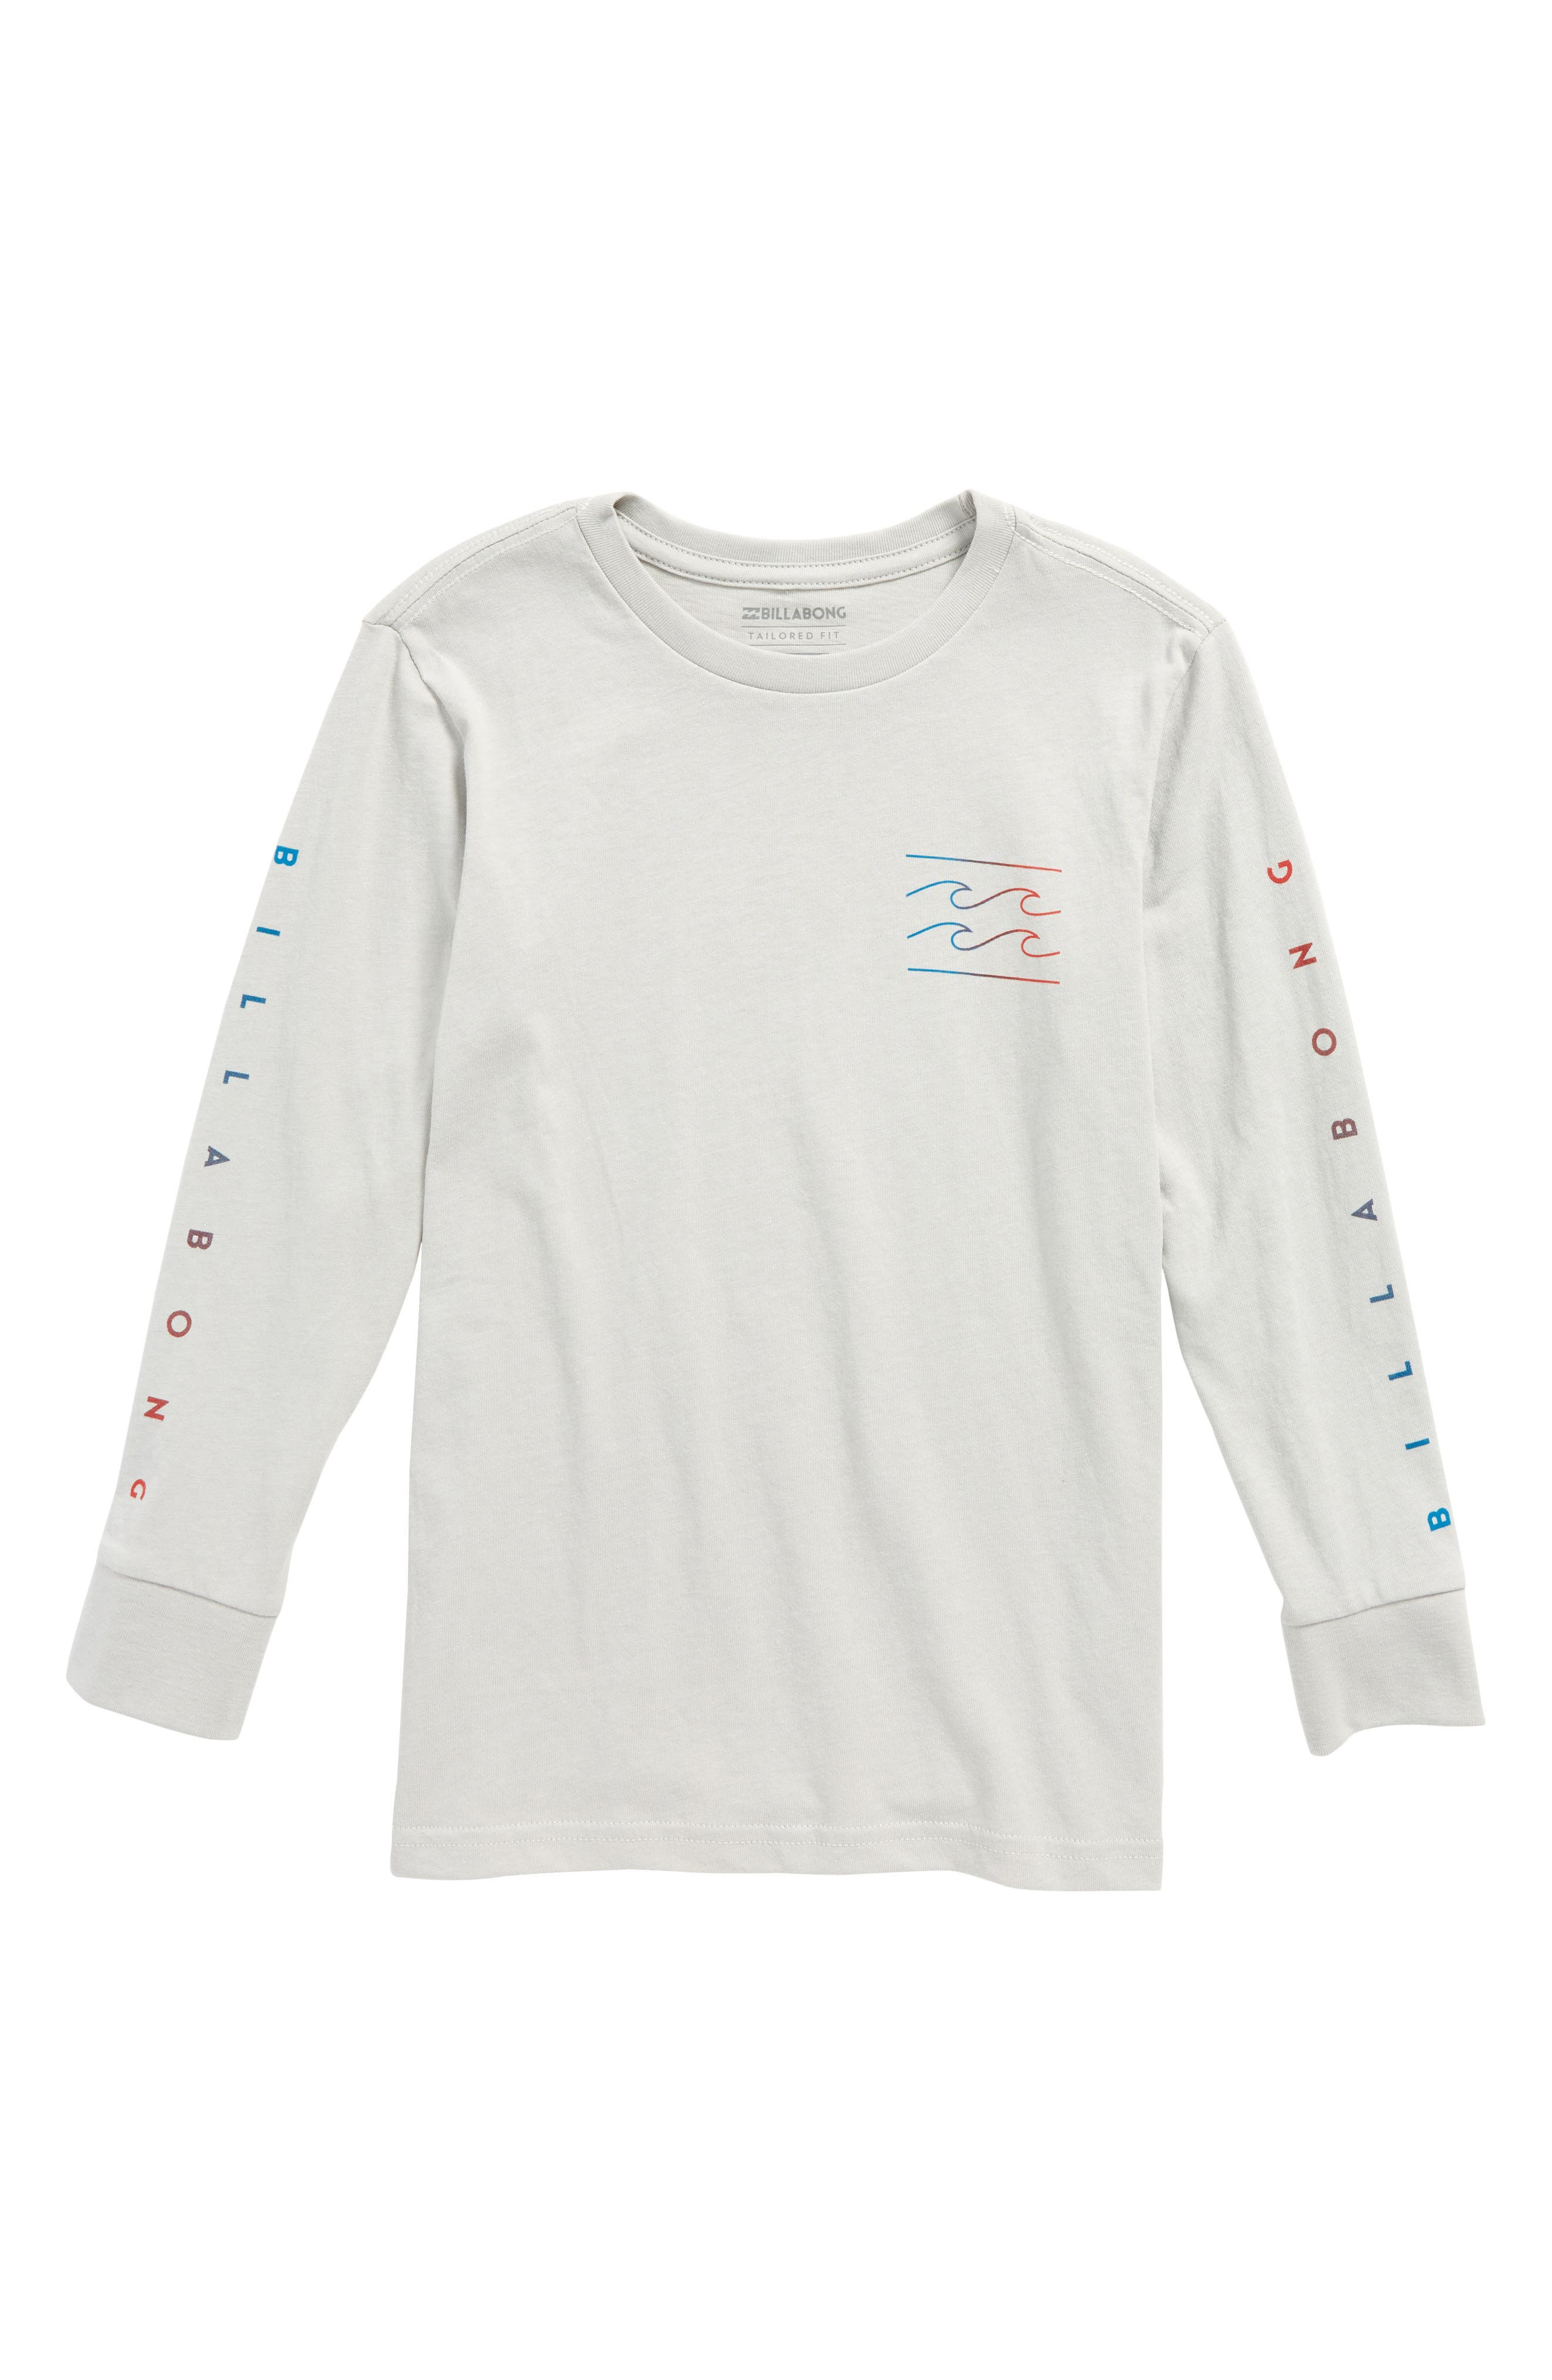 Unity Graphic Long Sleeve T-Shirt,                         Main,                         color, 020